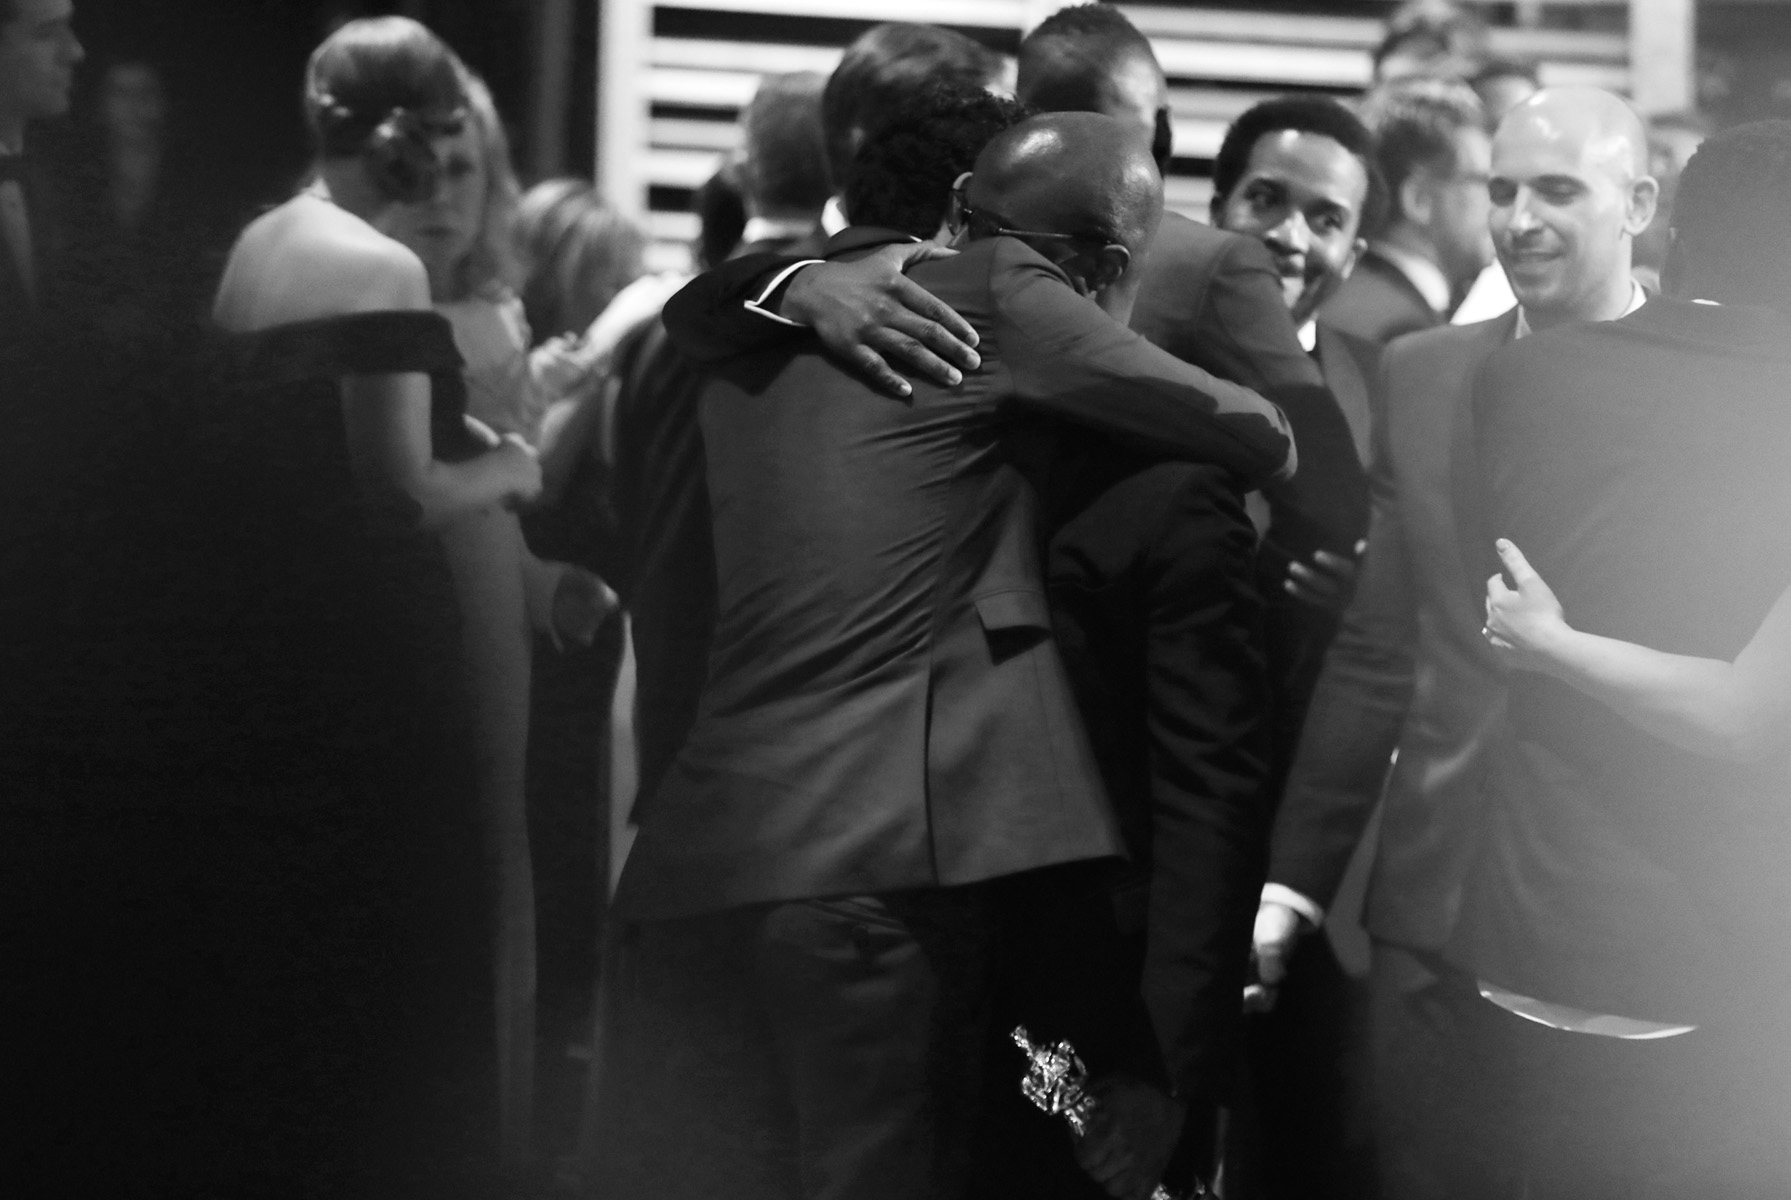 Damien Chazelle, left, congratulates Barry Jenkins as {quote}Moonlight{quote} is announced as the correct winner for best picture at the Oscars on Sunday, Feb. 26, 2017, at the Dolby Theatre in Los Angeles. (Photo by Matt Sayles/Invision/AP)